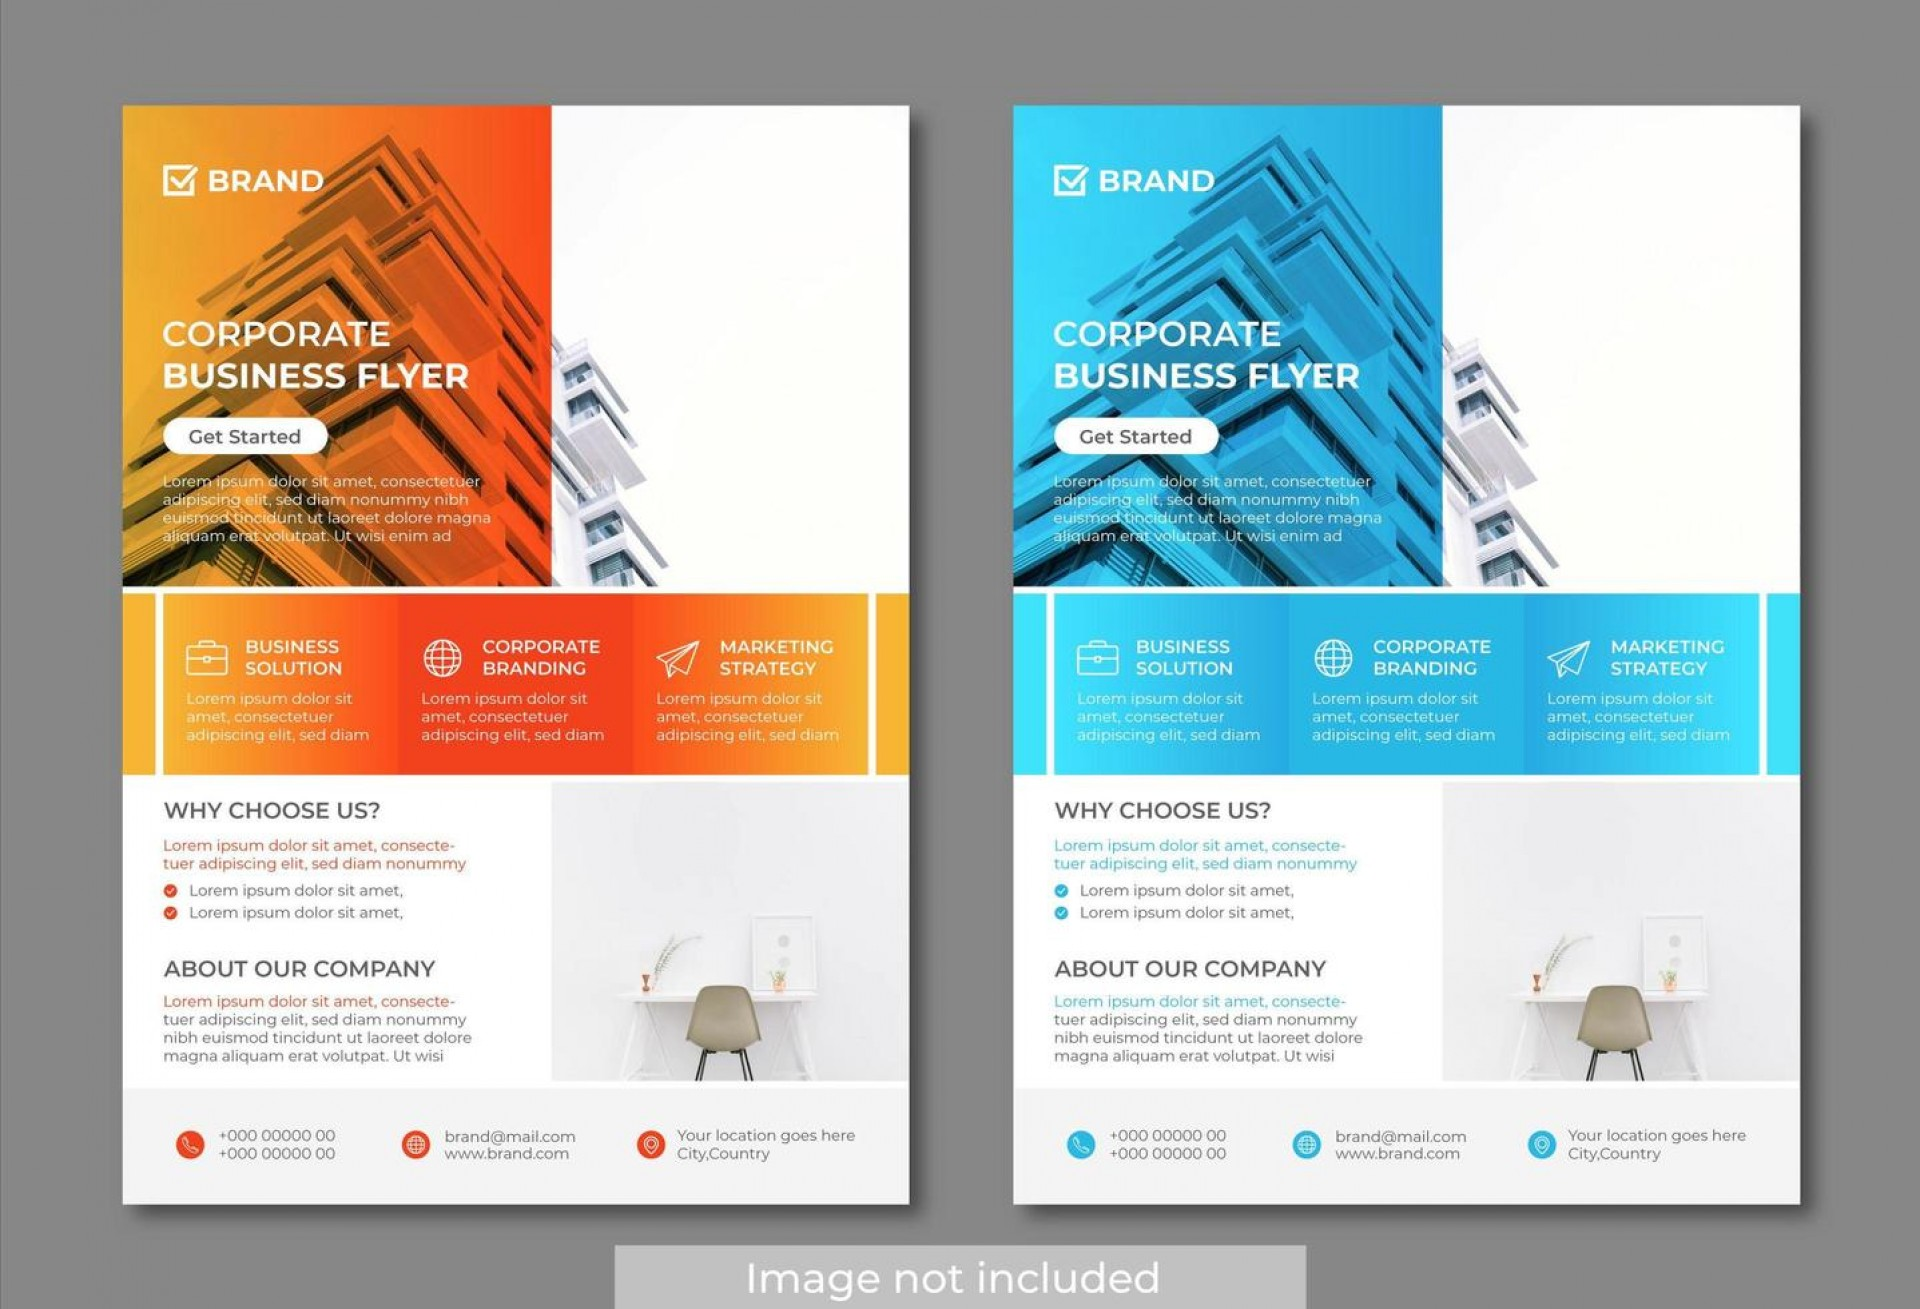 009 Incredible Free Download Flyer Template Image  Templates Blank Leaflet Word Psd1920